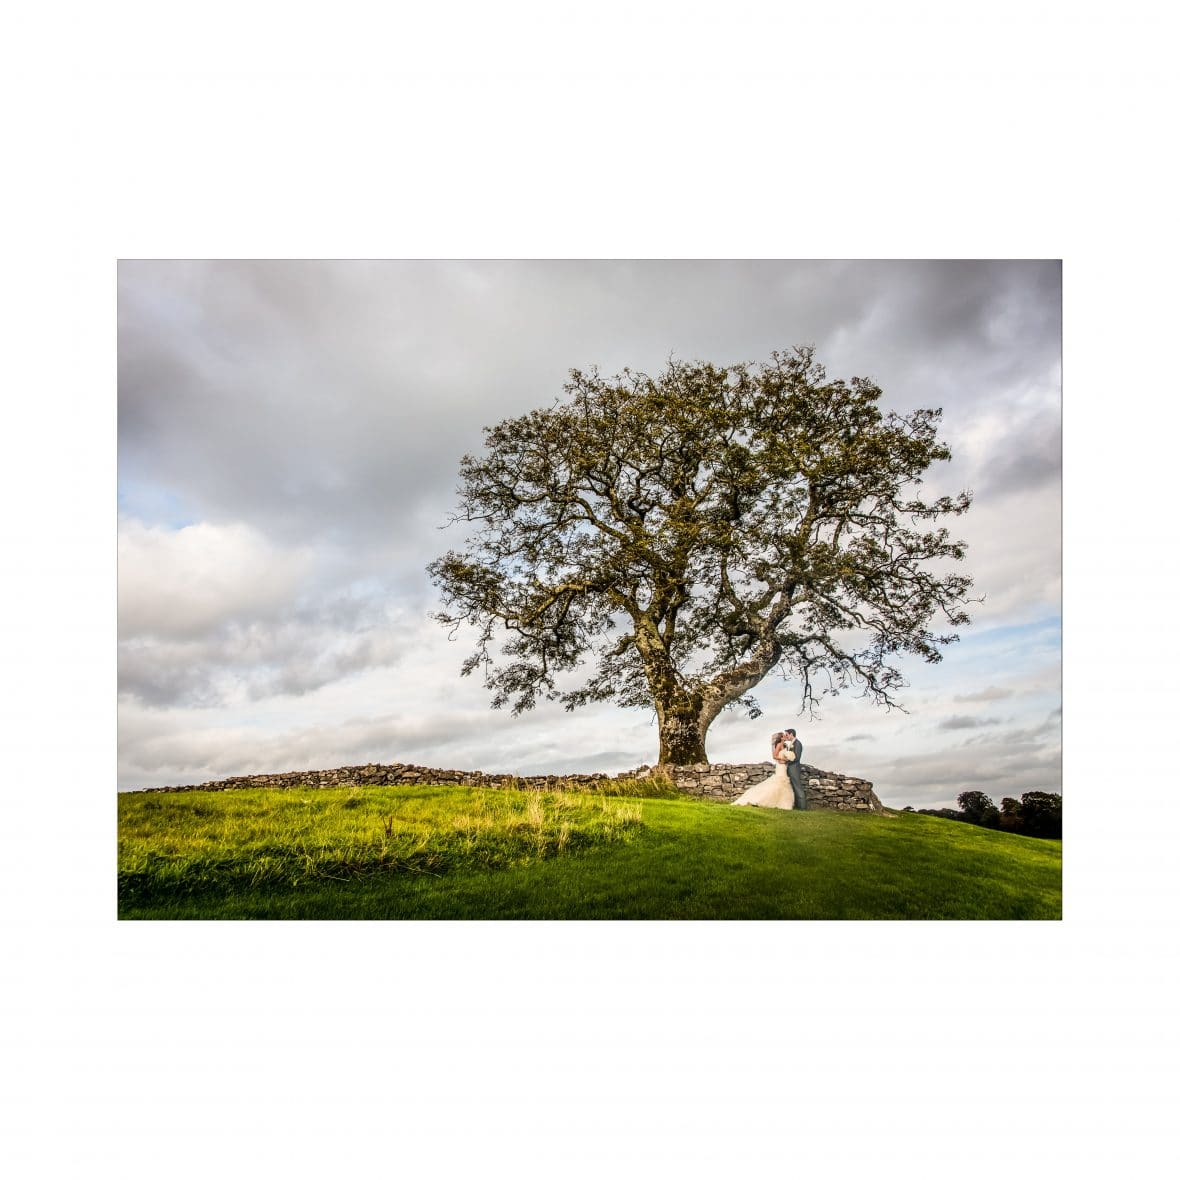 Winner of Best Classical Wedding Photography Portfolio and Single Image 2015